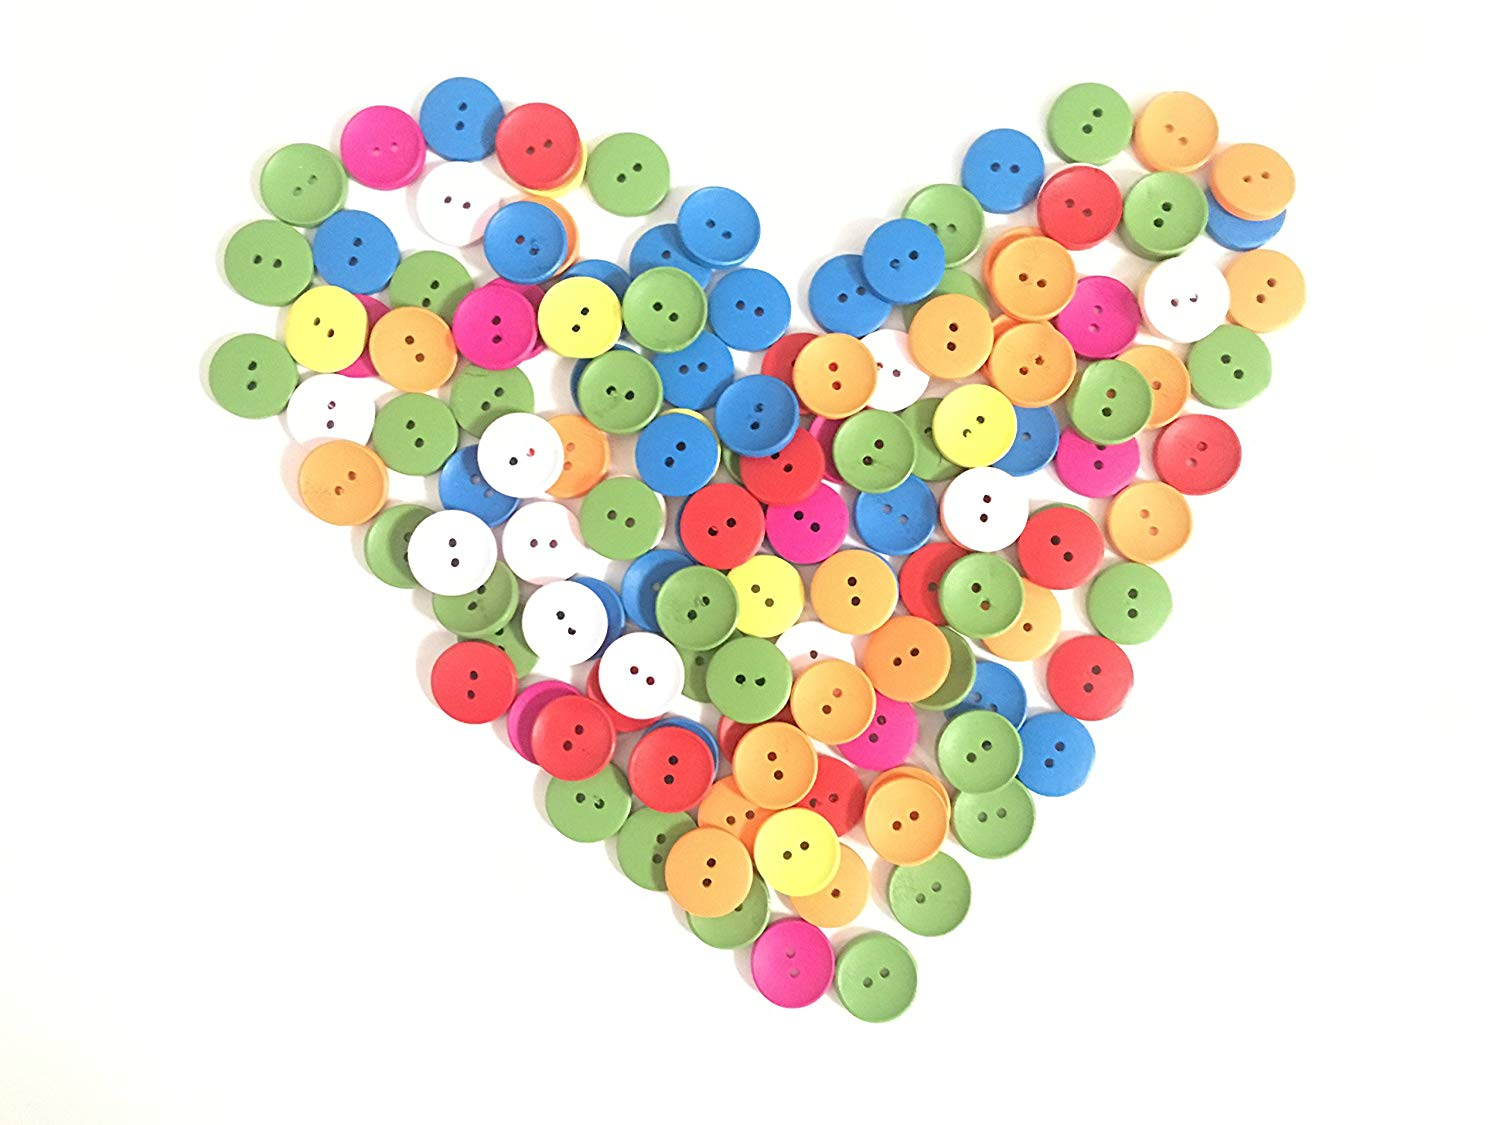 Timemorry 100PCS Mixed Random 2-Holes Wooden Buttons-DIY-Craft Sewing Buttons-20MM-7 Colors